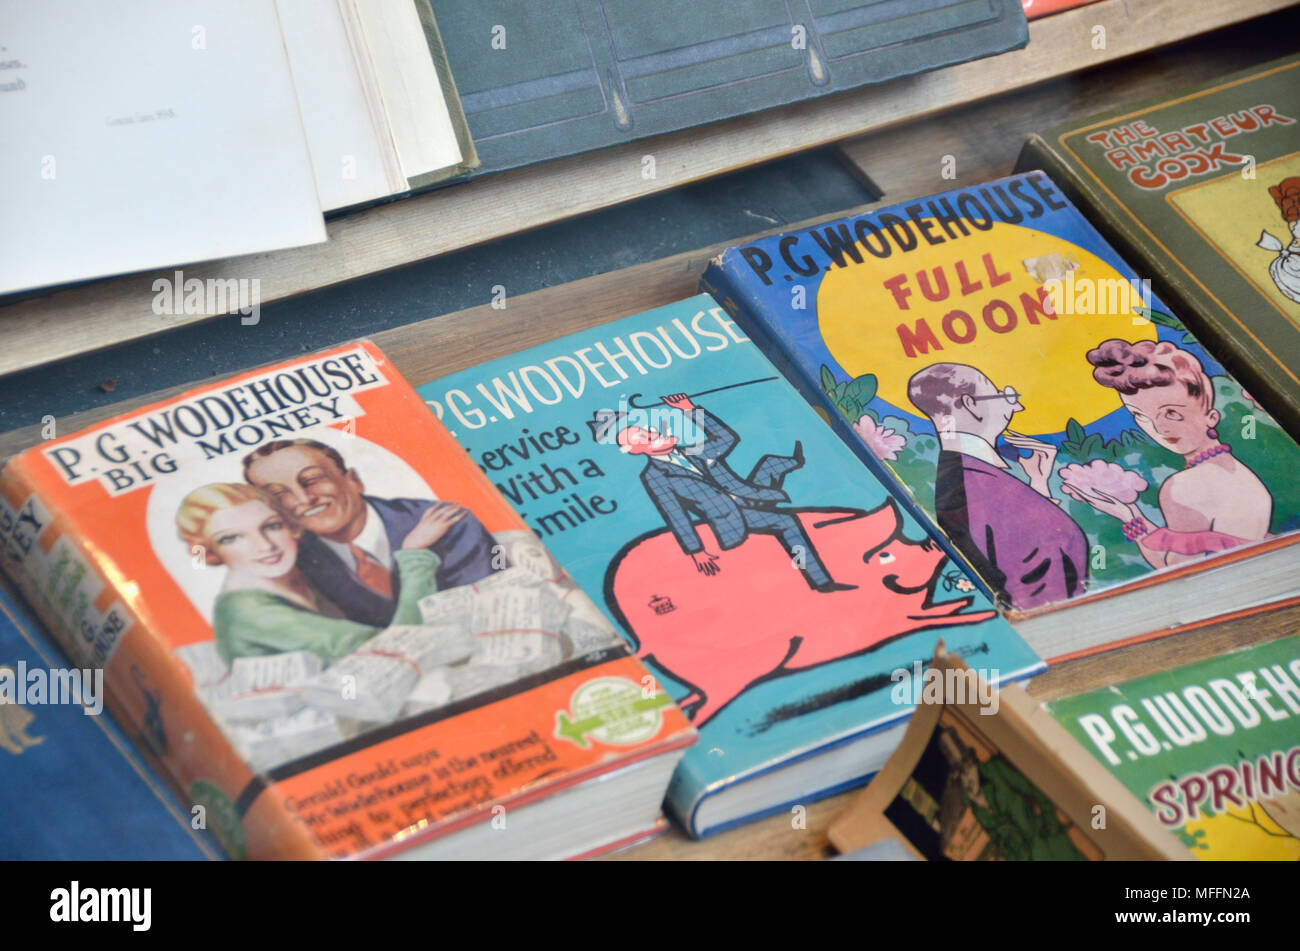 Old secondhand copies of P G Wodehouse novels in a bookshop window display. - Stock Image